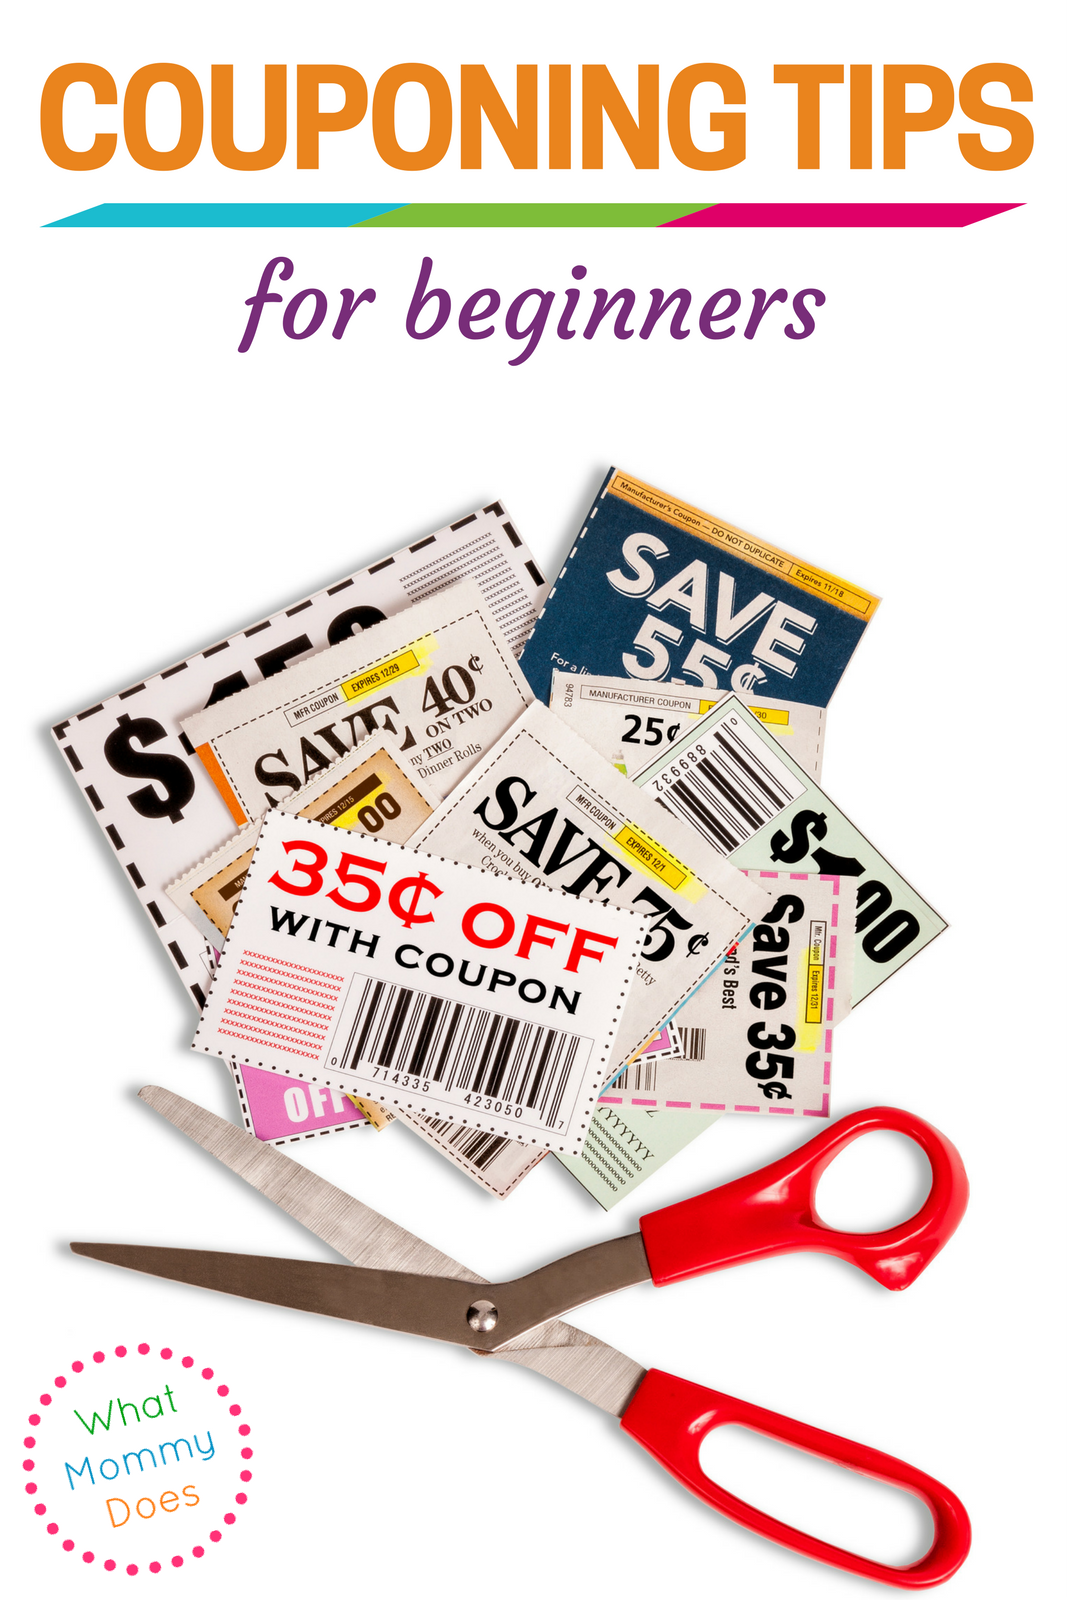 Couponing for Beginners - Save money with these awesome coupon tips for beginners! You may even be able to score free stuff!!